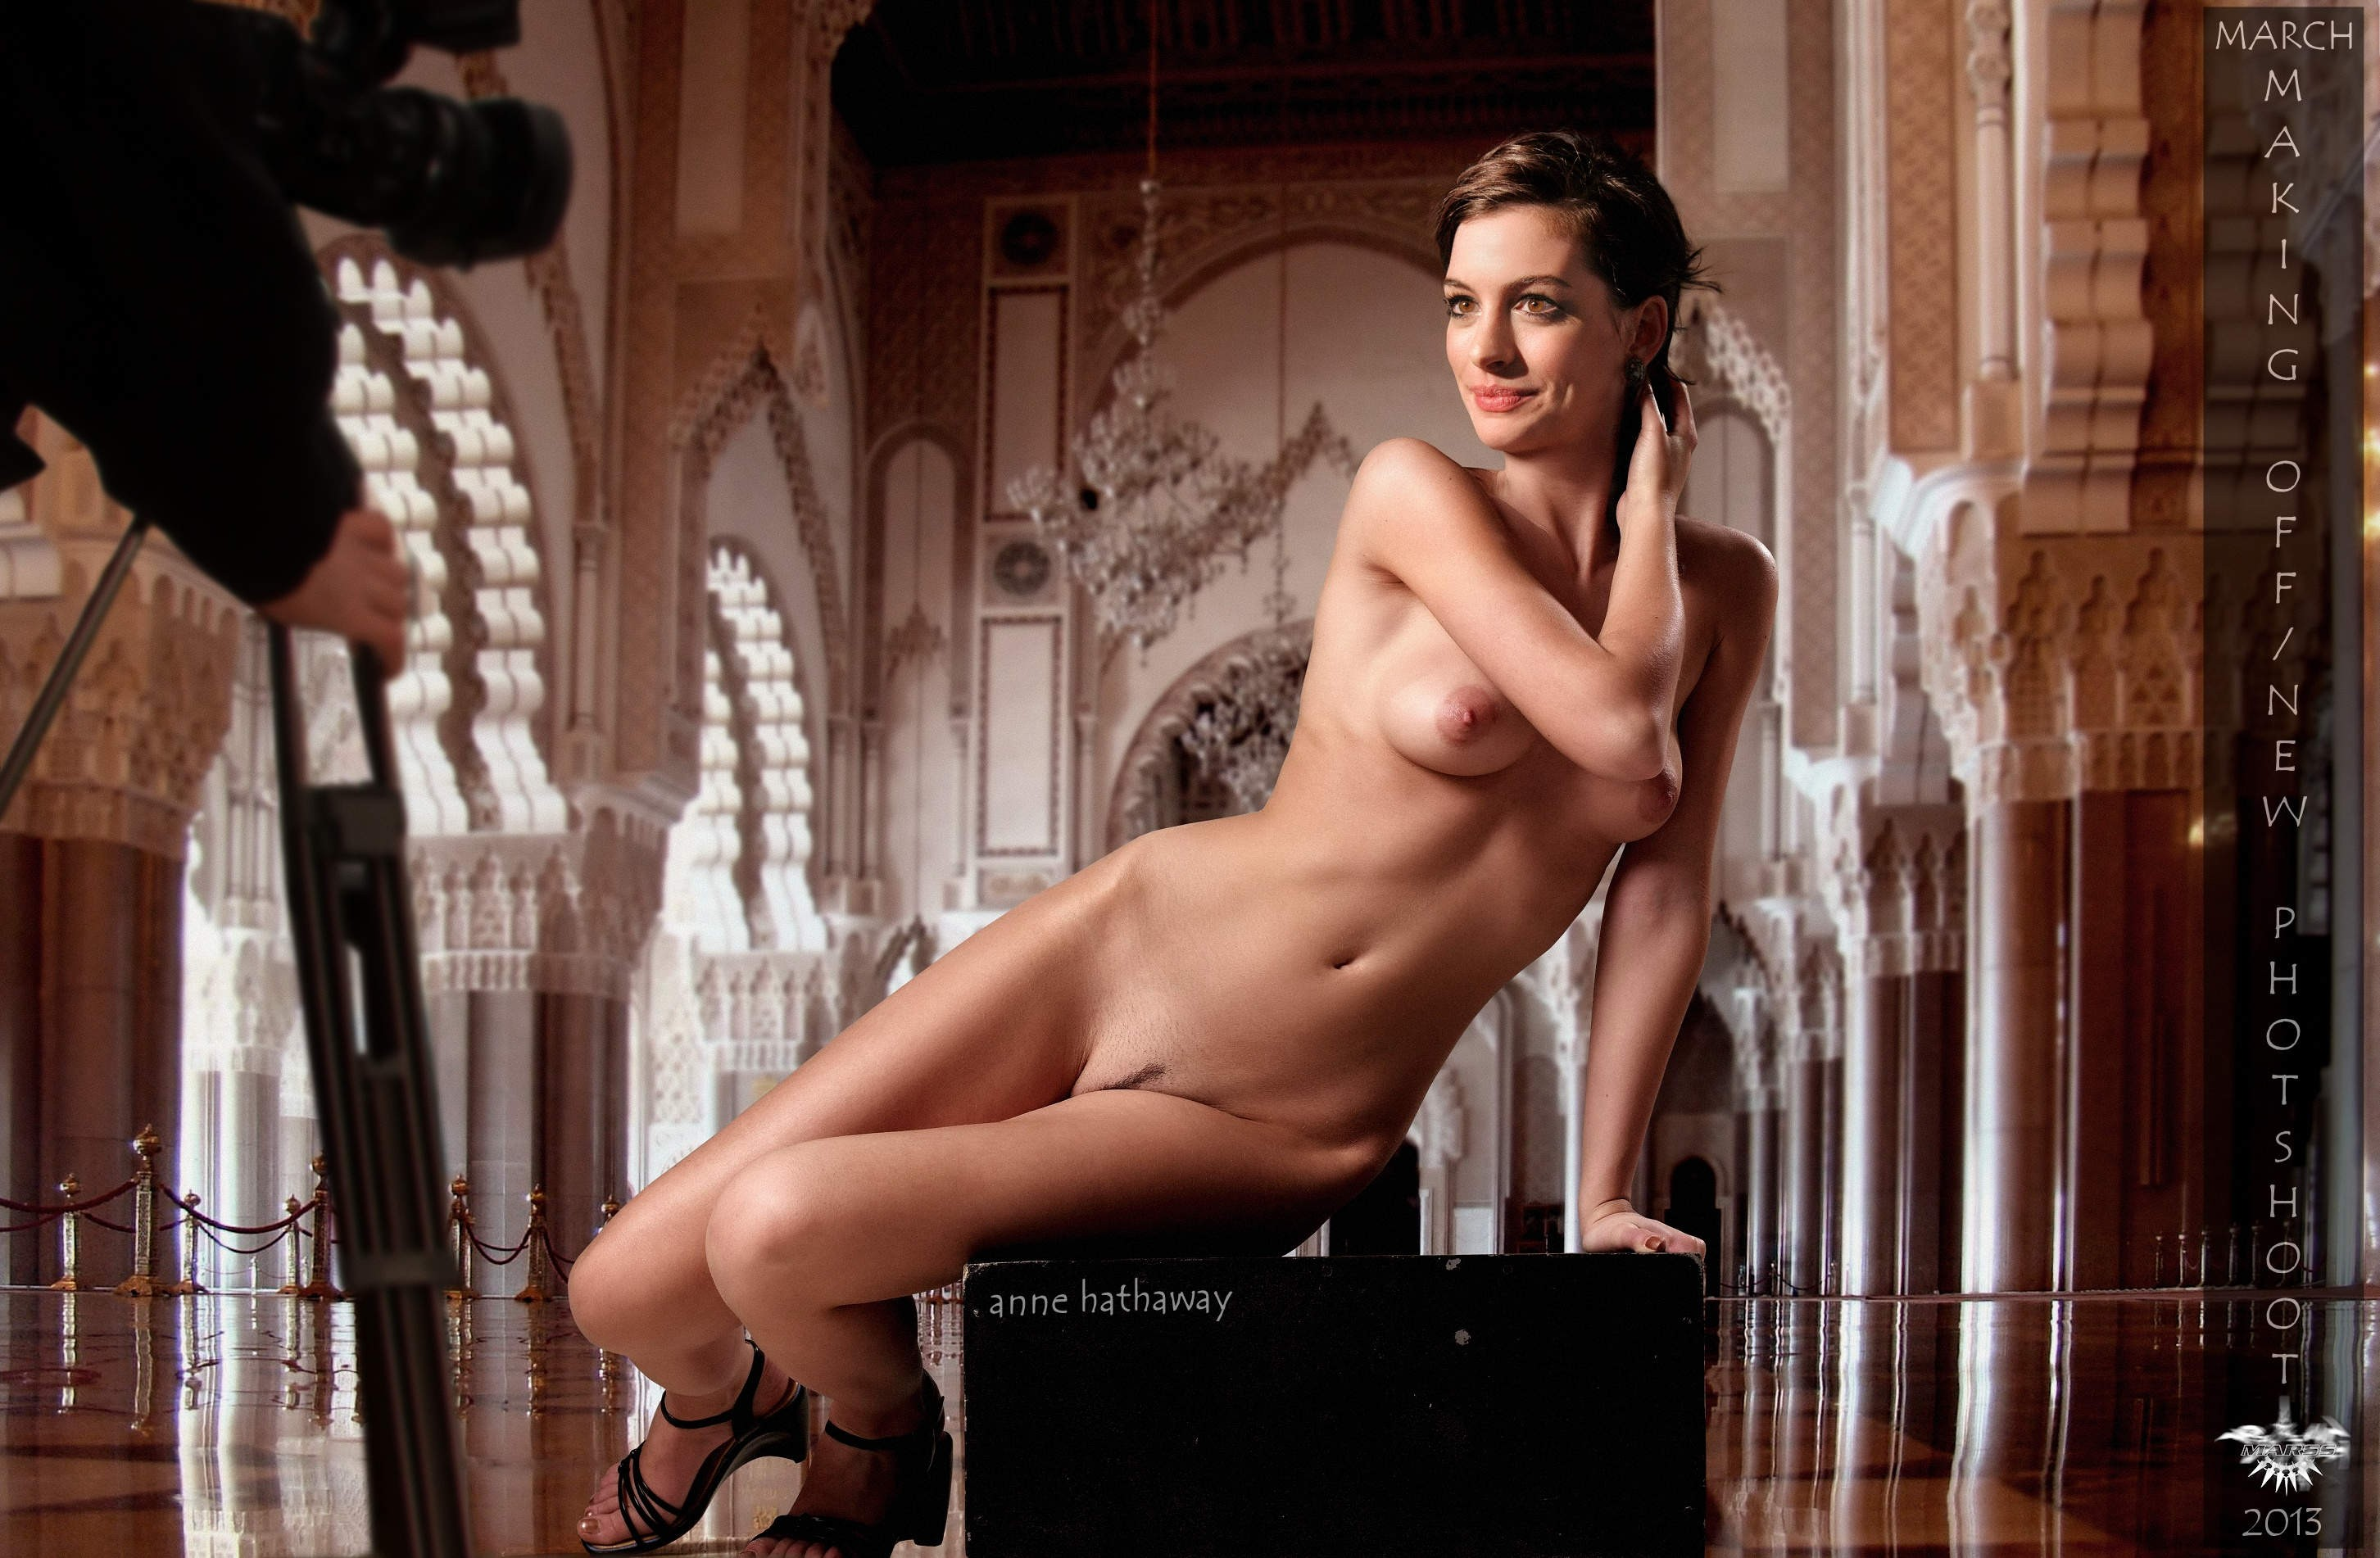 Anne hathaway naked with a man — photo 13